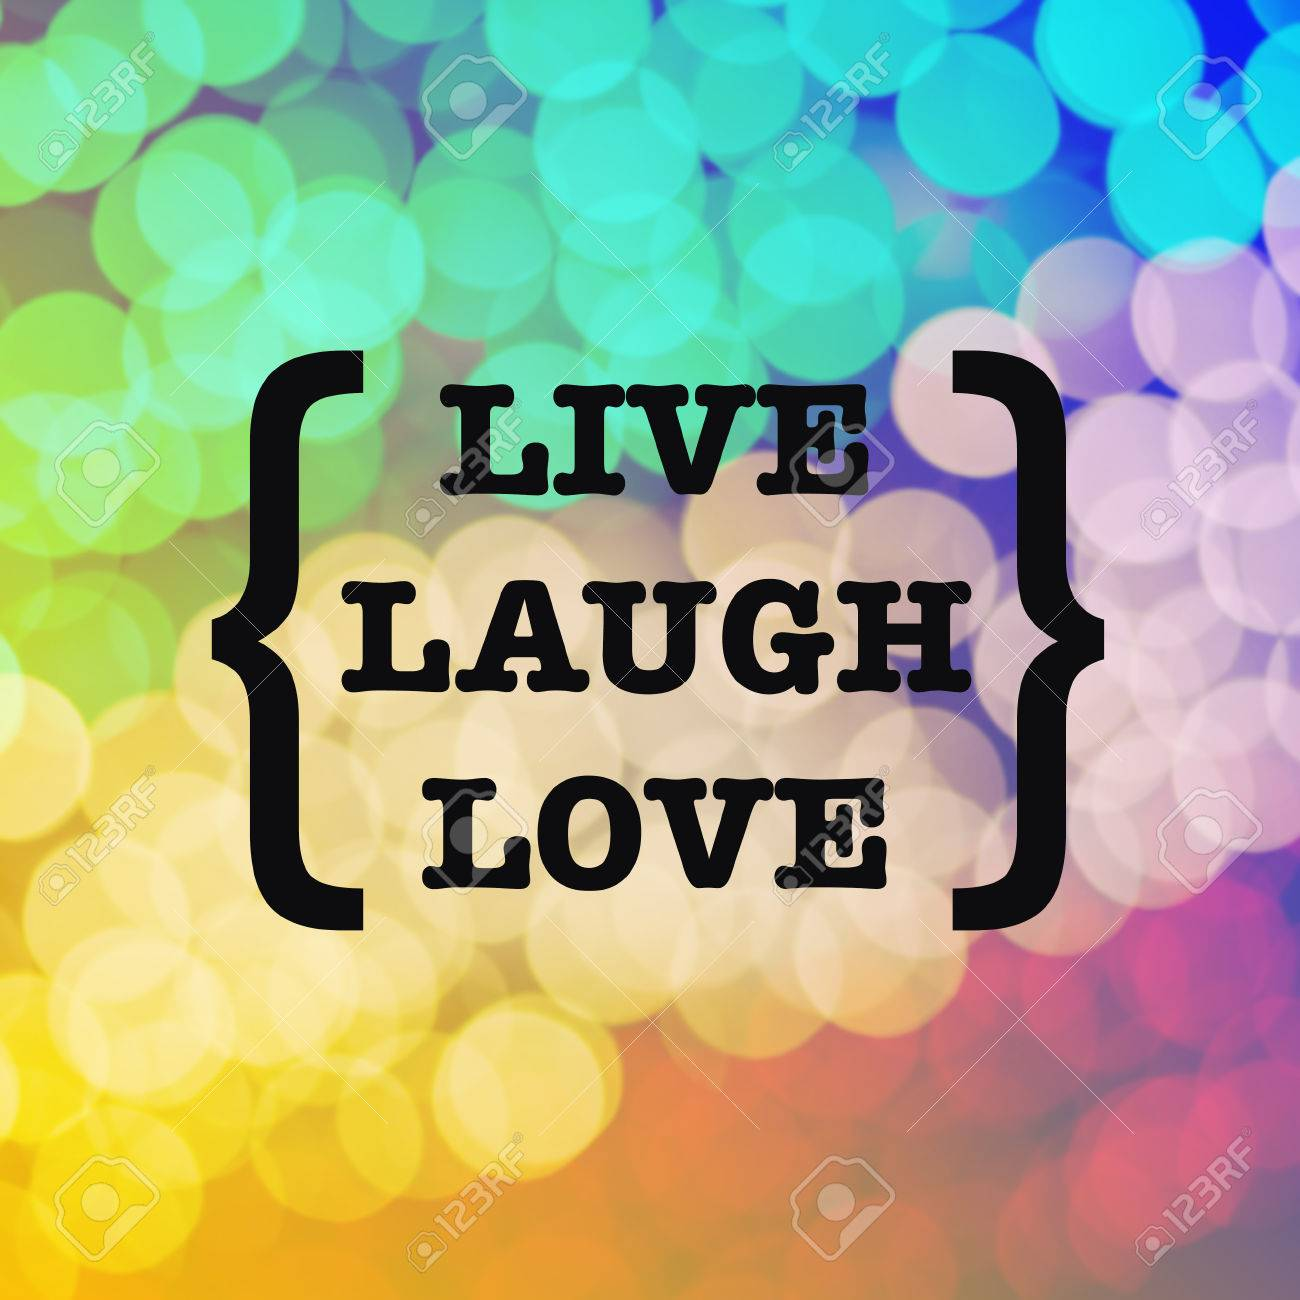 Live laugh love quote on colorful bokeh background